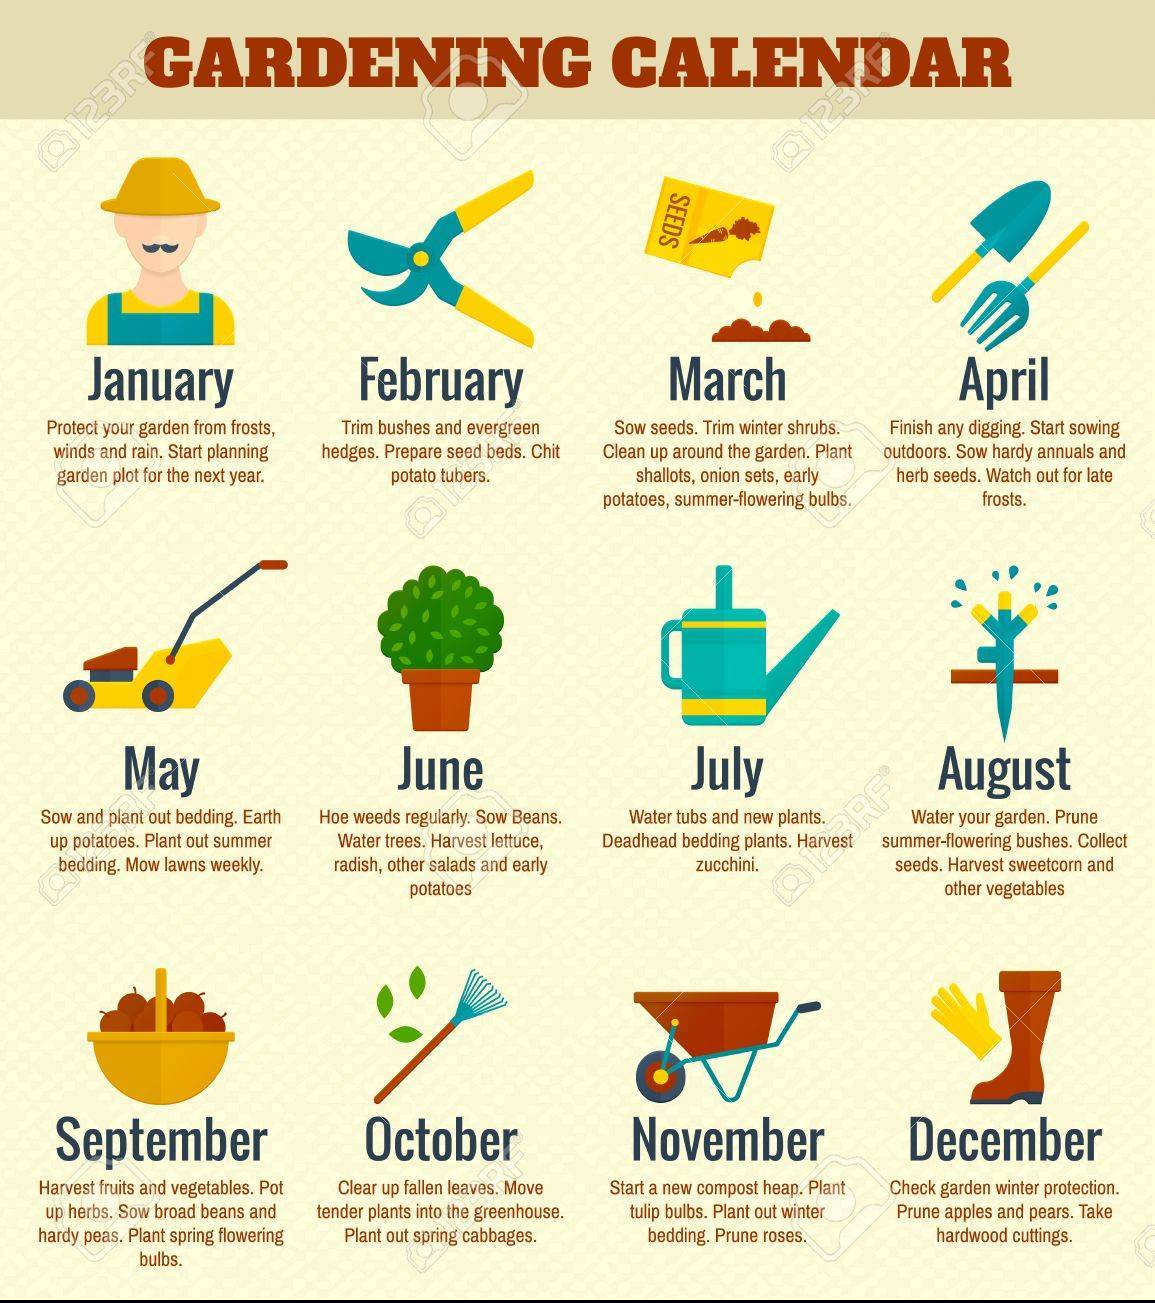 Nursery Calendar Ideas : Spring happenings upcoming activities events to note